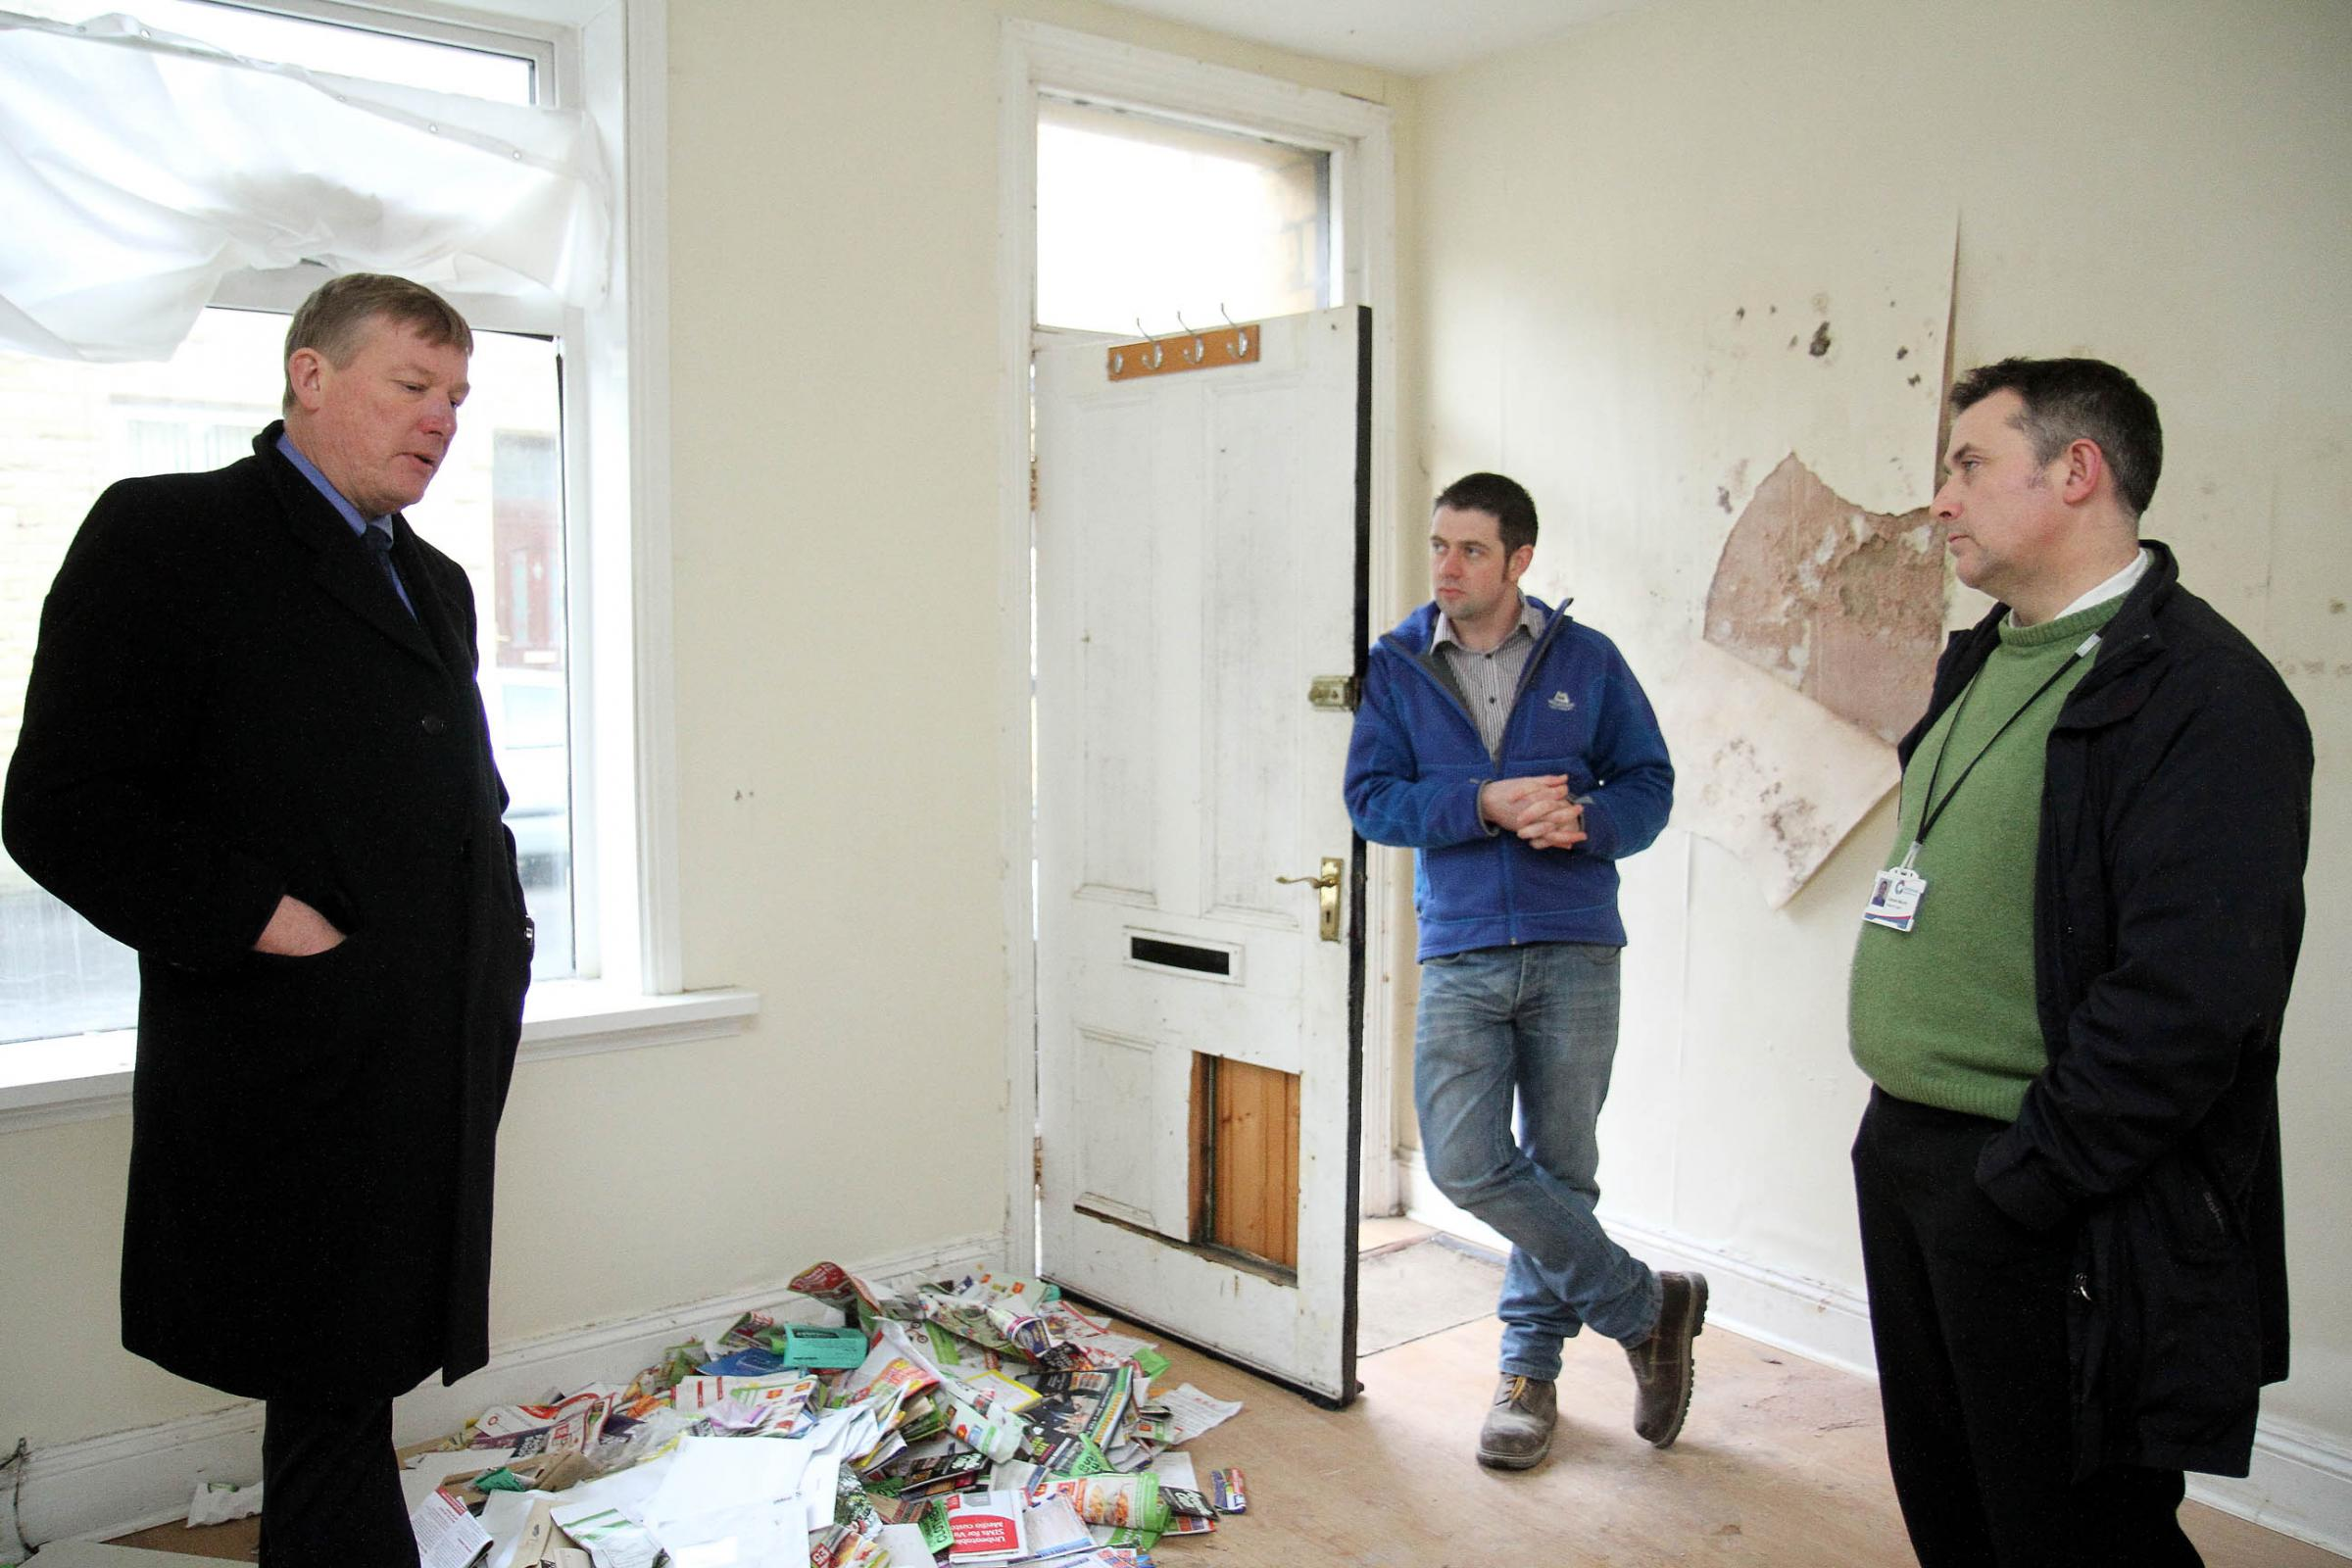 Housing minister Kris Hopkins talks to Dave Gibson, Keyhouse's empty homes worker and the project's head, Graham Mynott